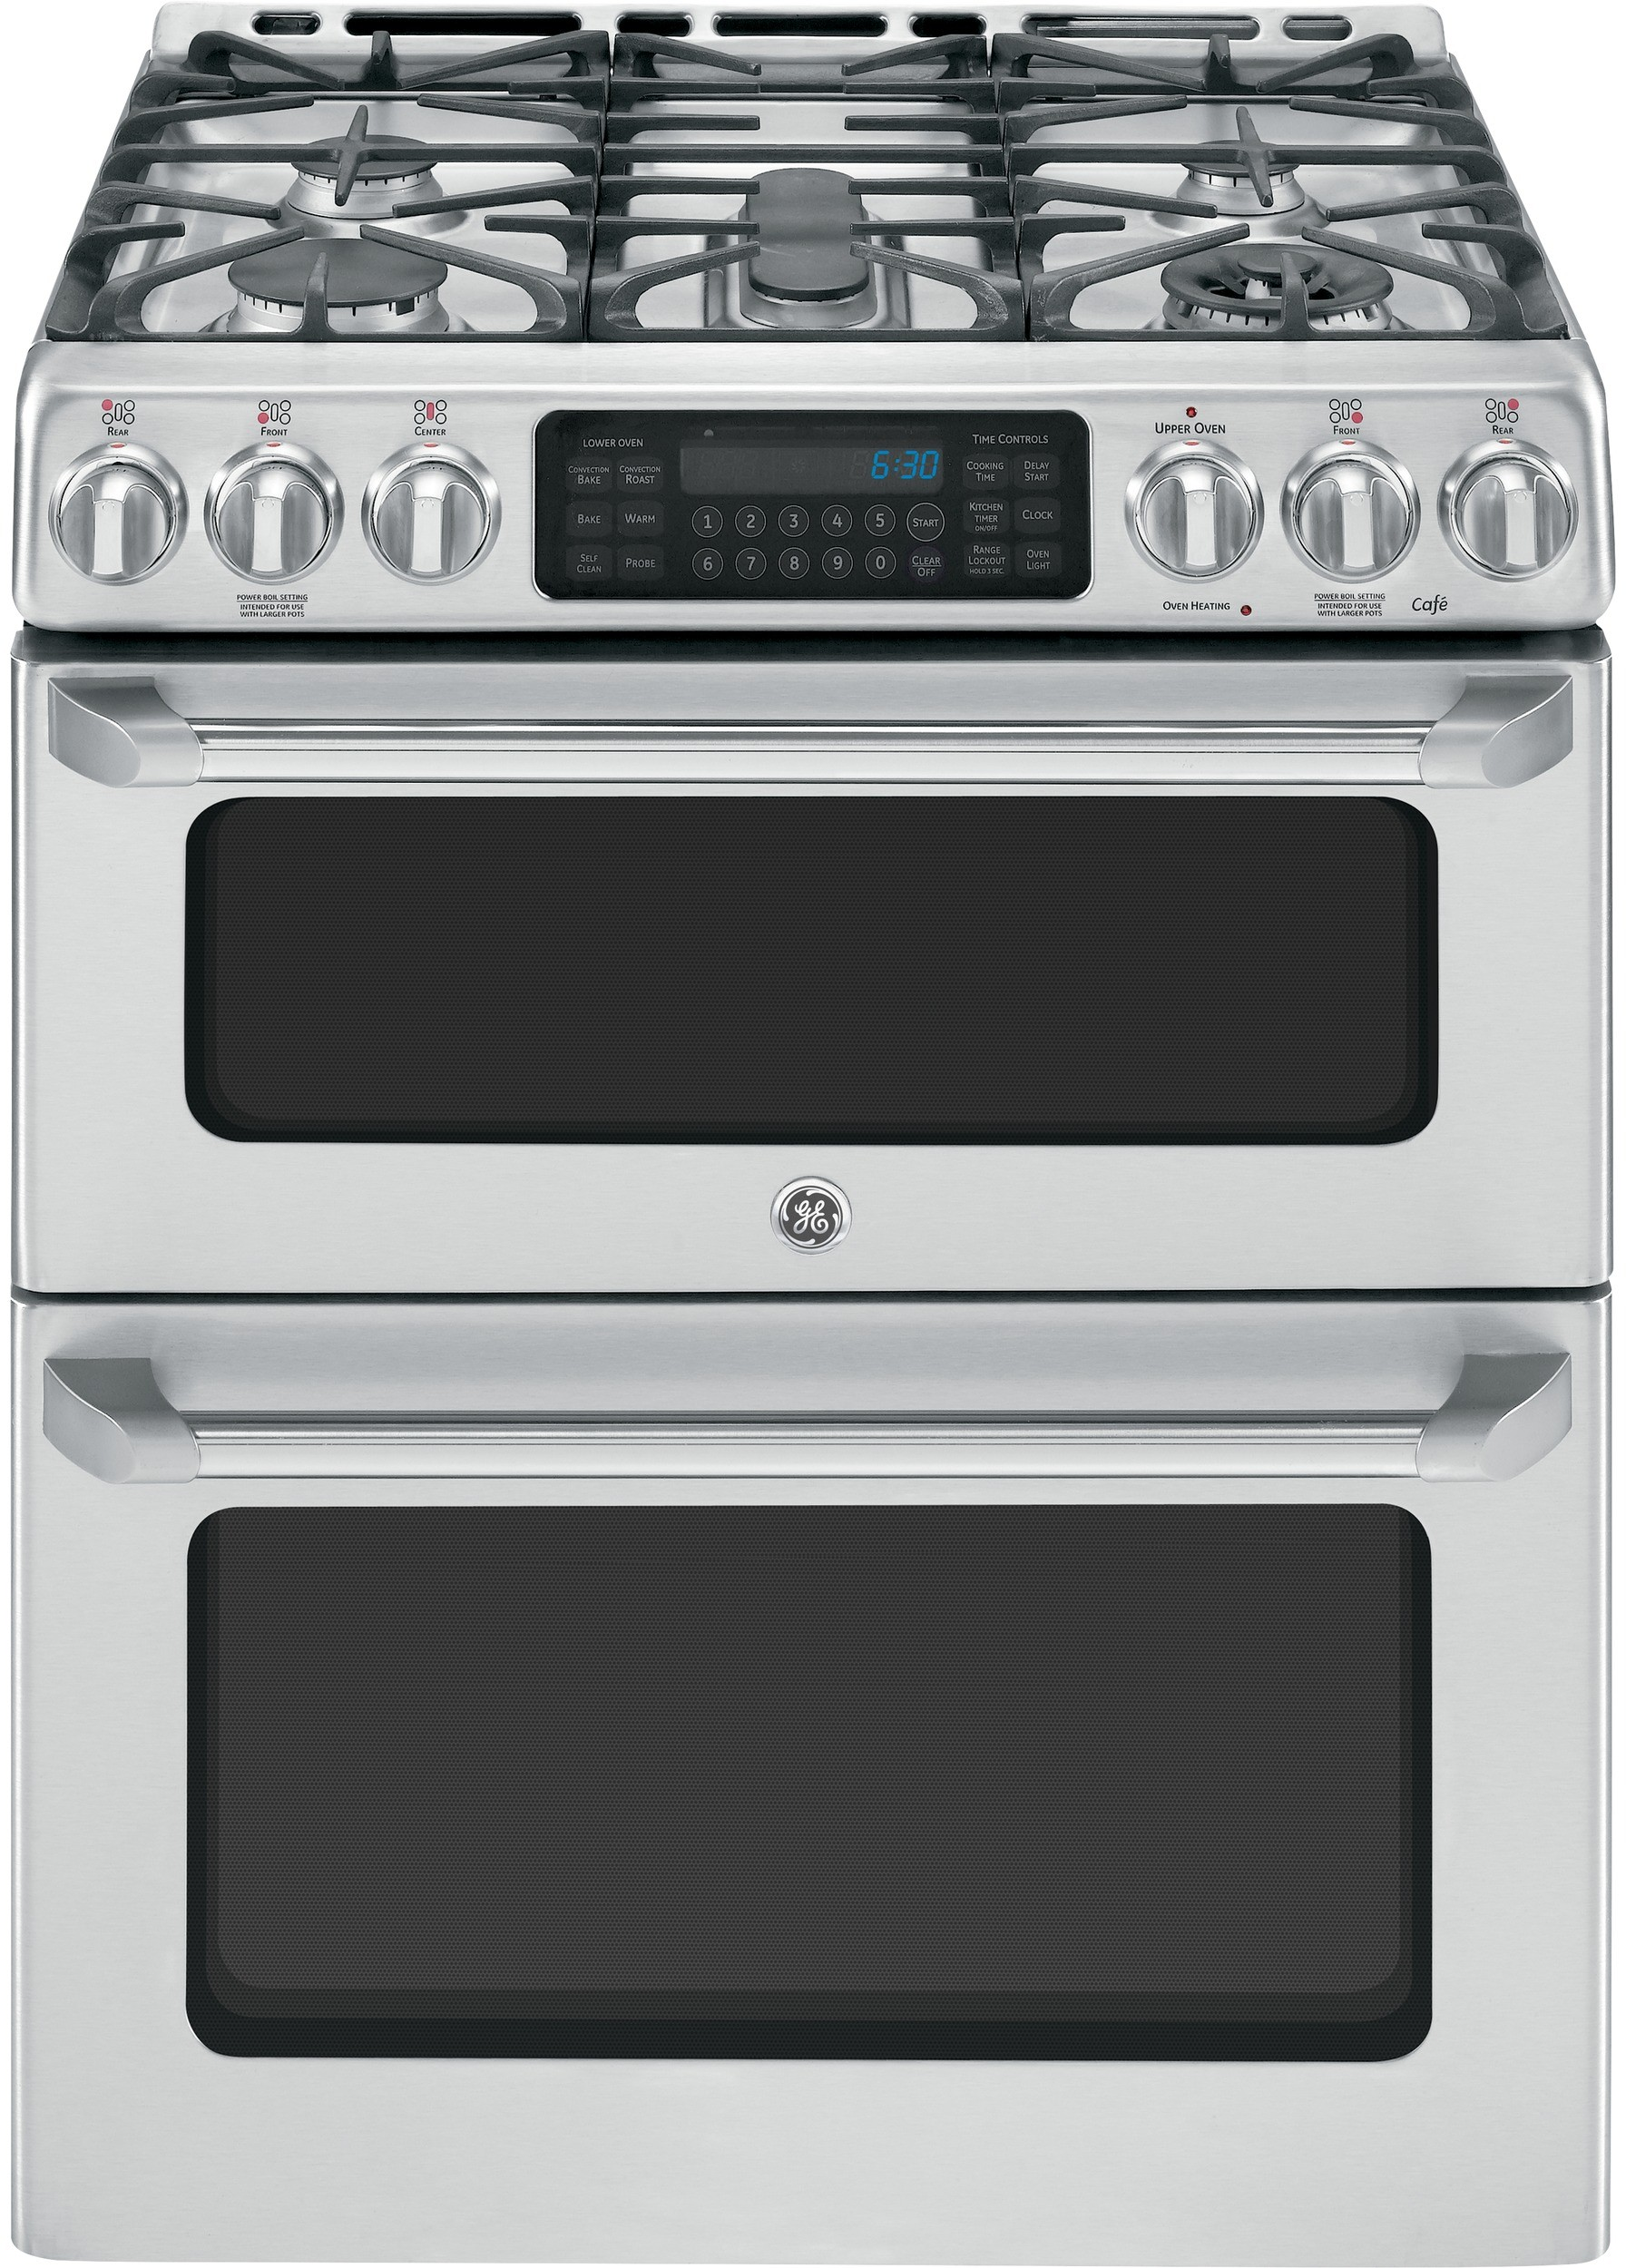 Ge Cgs990setss 30 Inch Slide In Café Series Double Oven Gas Range With Precise Simmer Burner Non Stick Griddle Fits Guarantee Temperature Probe